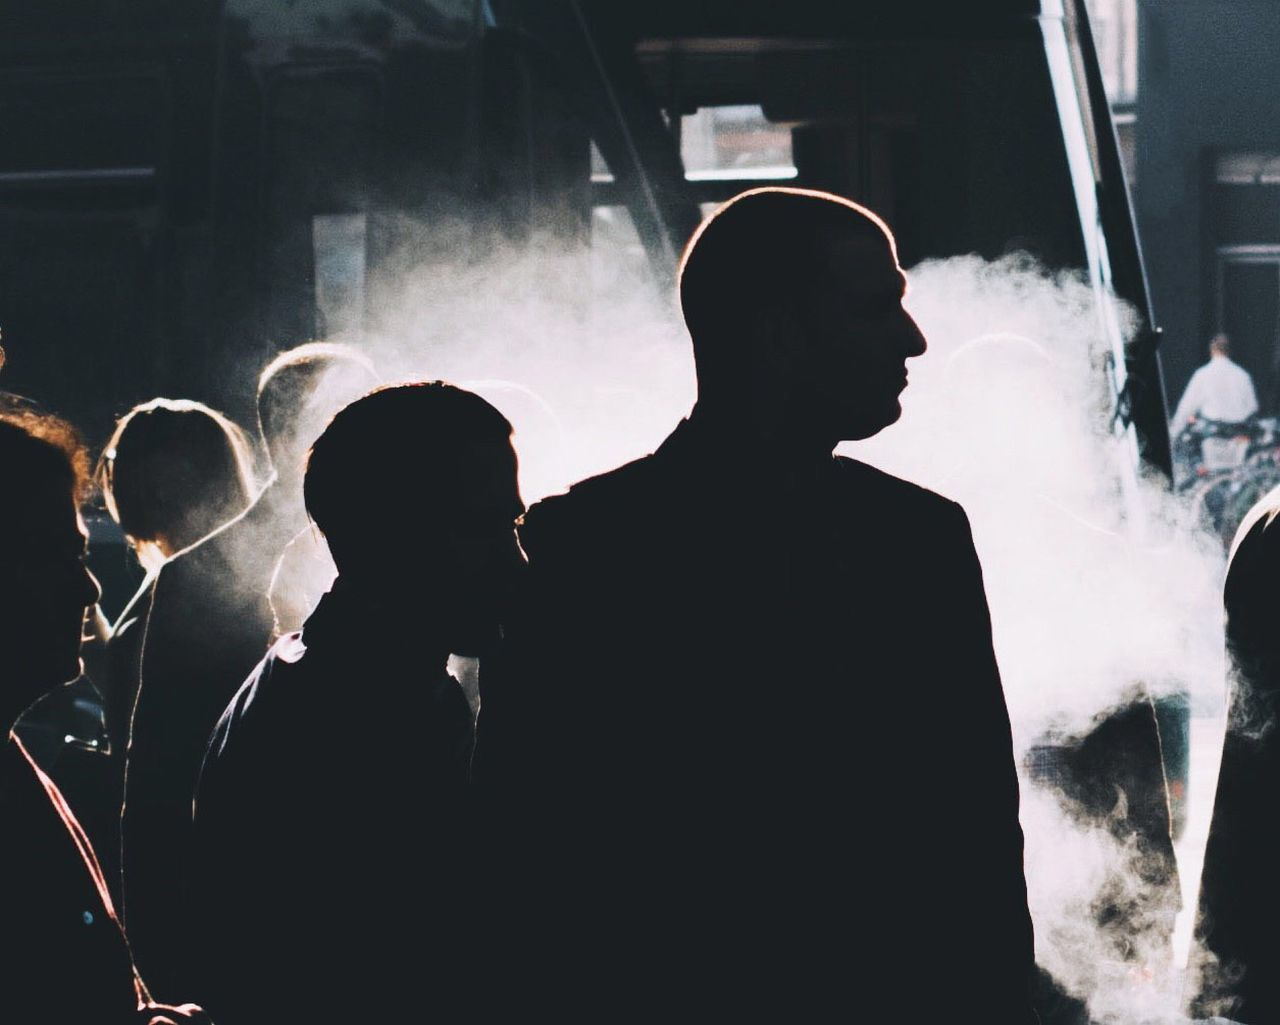 The Street Photographer - 2017 EyeEm Awards Streetphotography Men Silhouette Real People Adult Well-dressed People Crowd Smoke Business Togetherness Outdoors